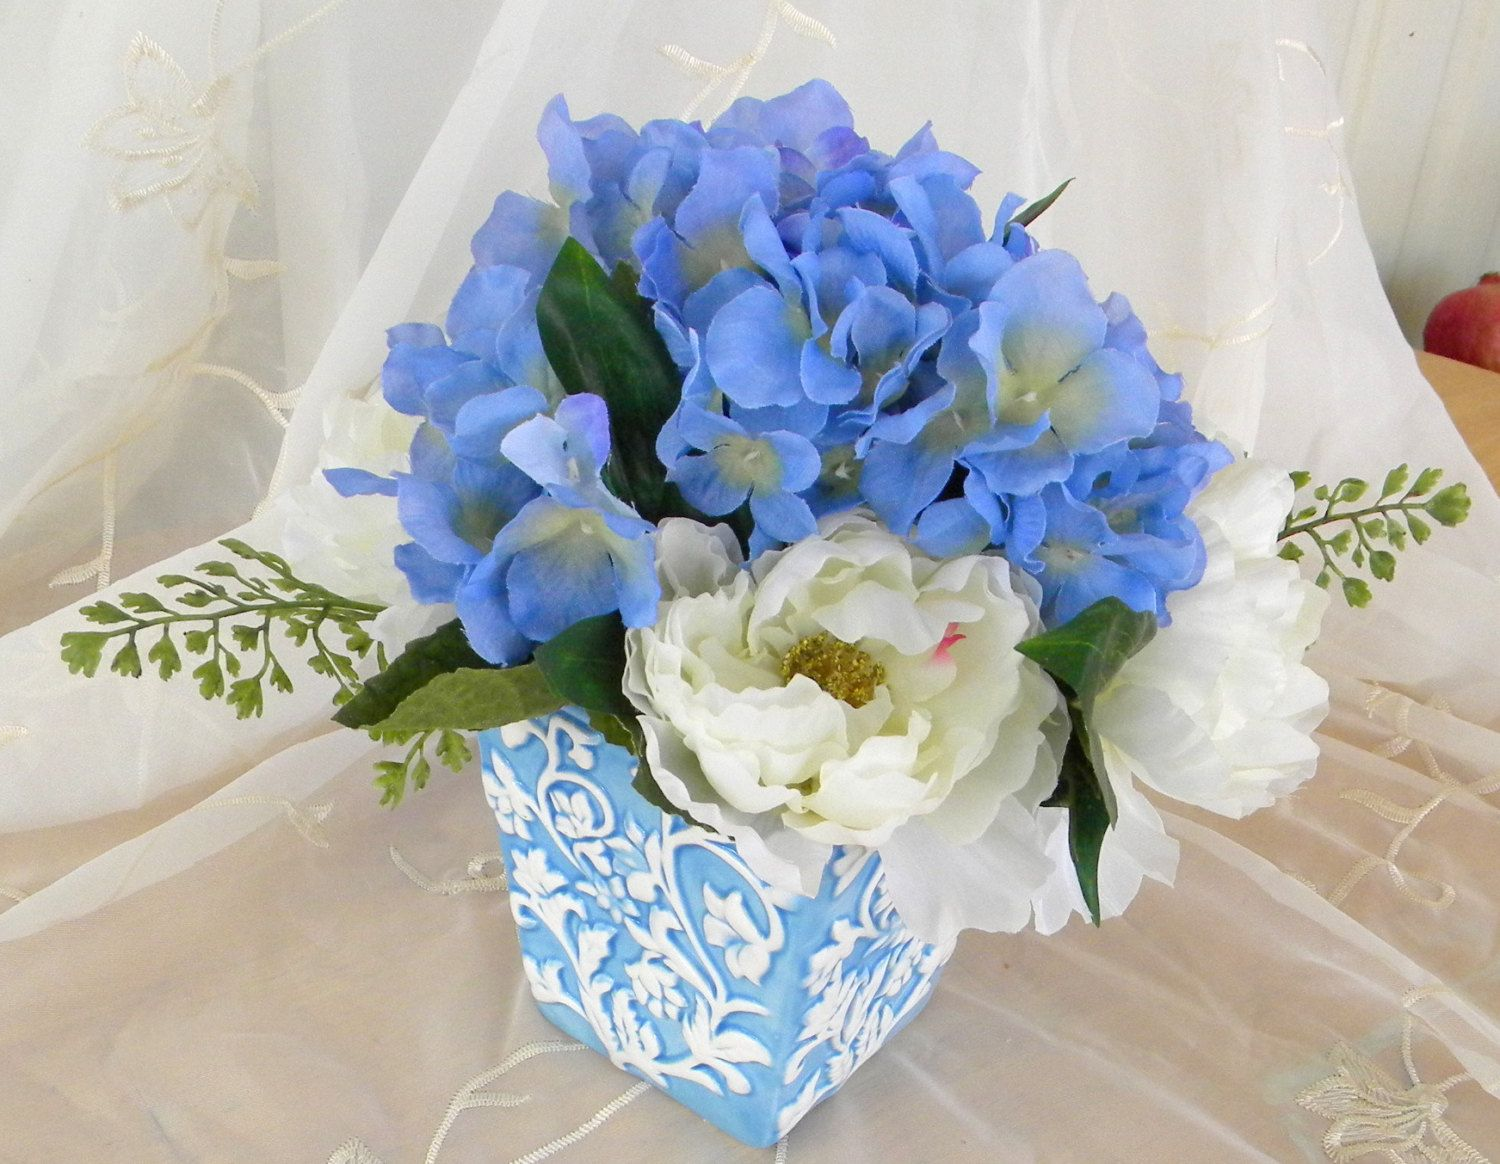 Beautiful Blue Hydrangeas and White Peonies Silk Floral Arrangement in Blue and White Ceramic Pot by RitasGarden on Etsy